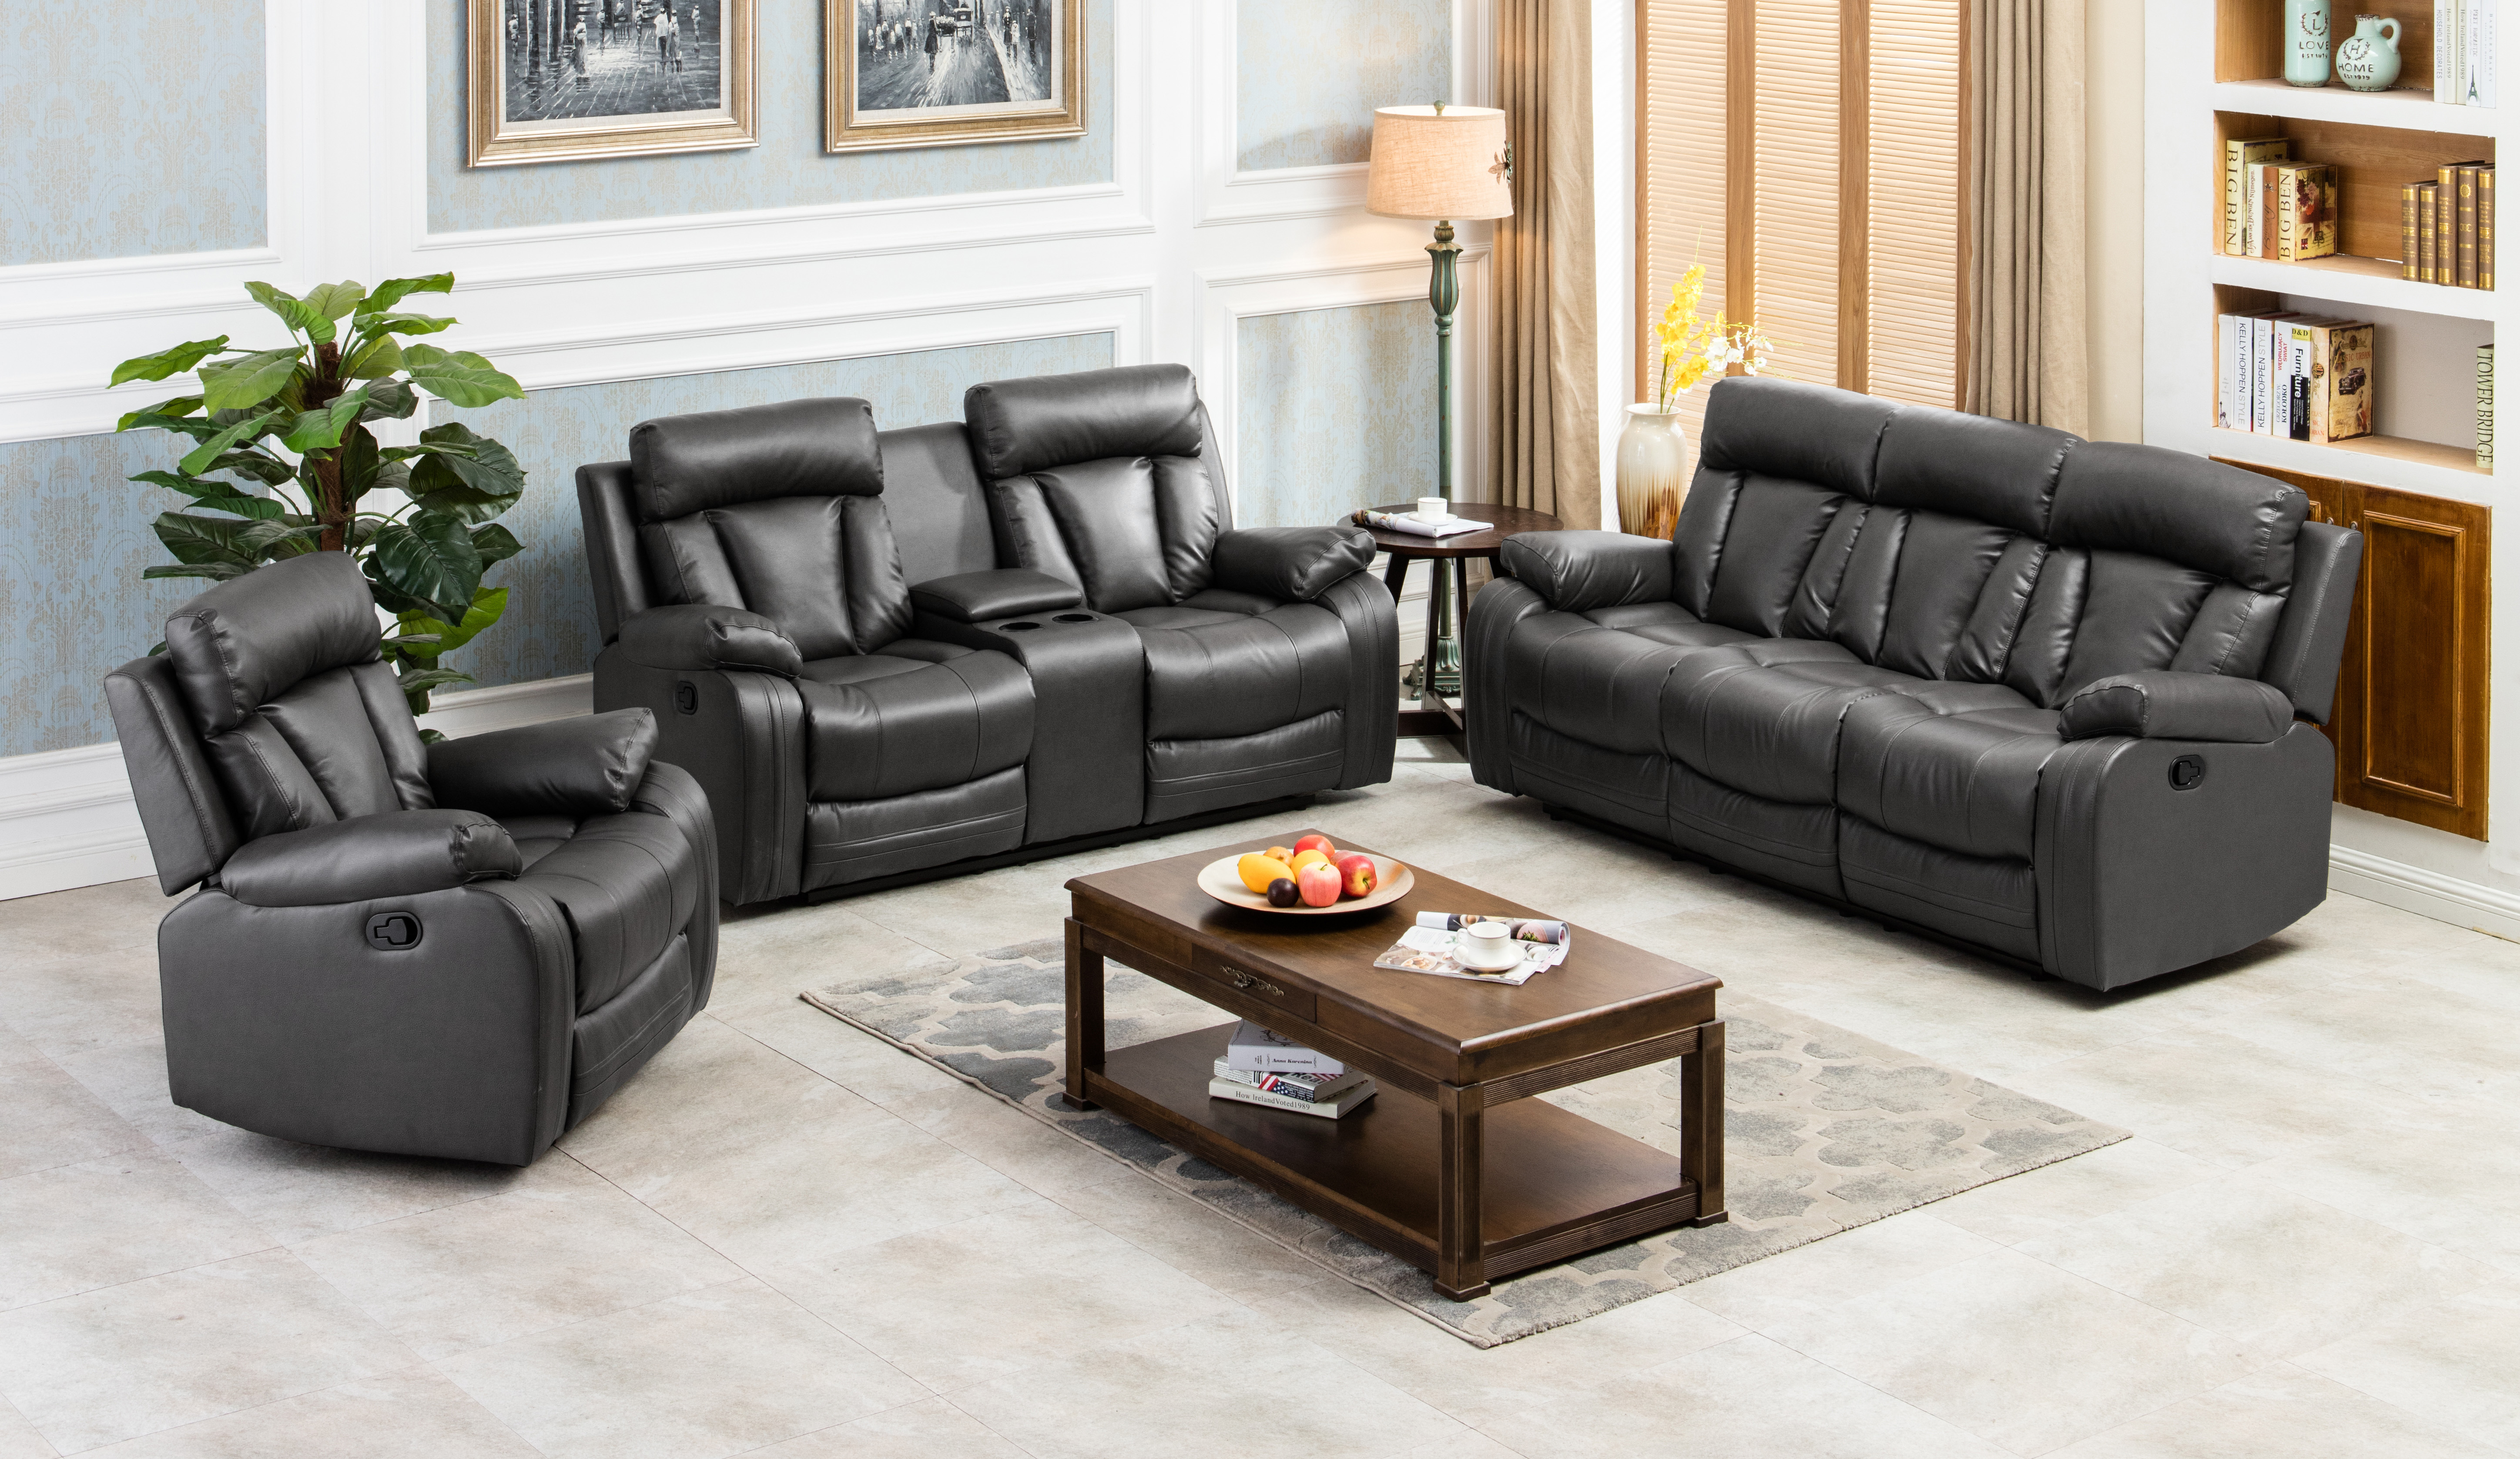 Naples Bonded Leather Reclining Loveseat W Console Set Furniture Dist